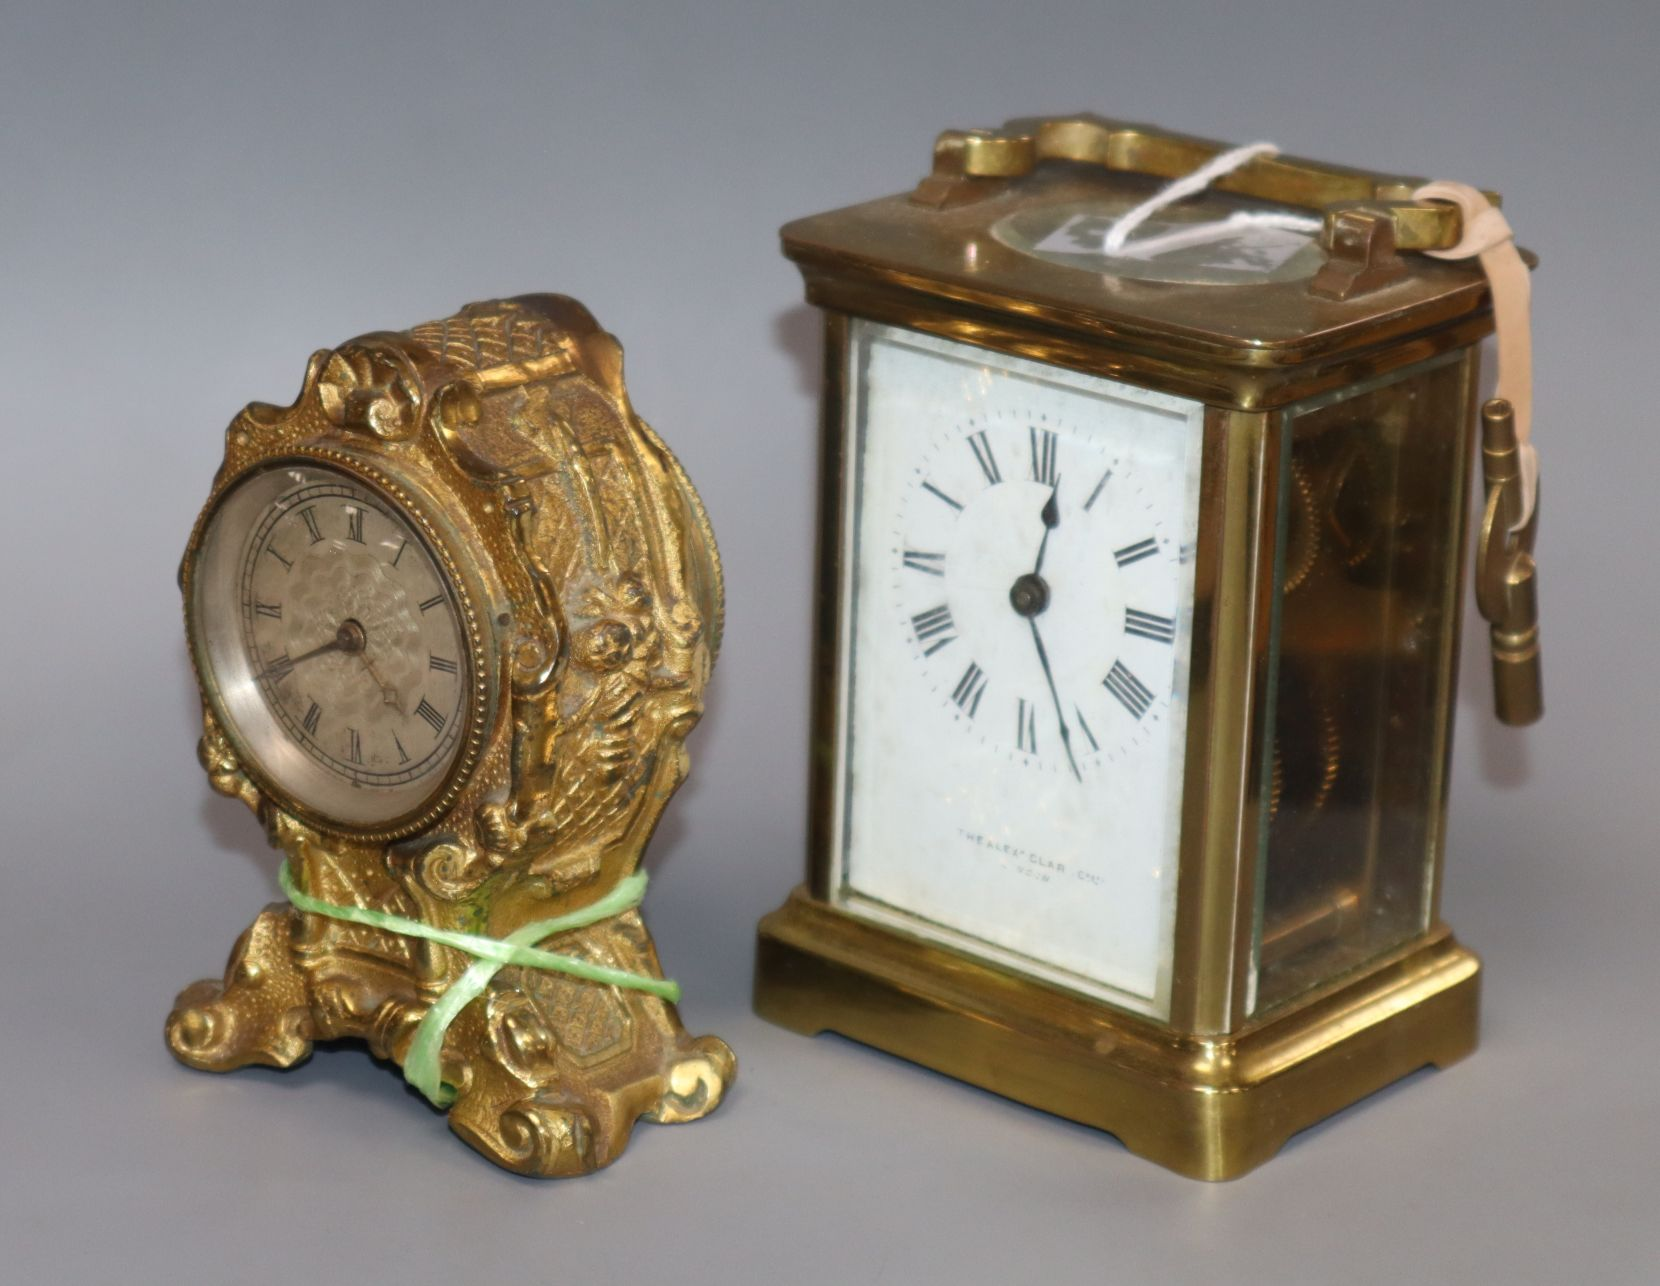 Lot 315 - A carriage clock and a gilt timepiece